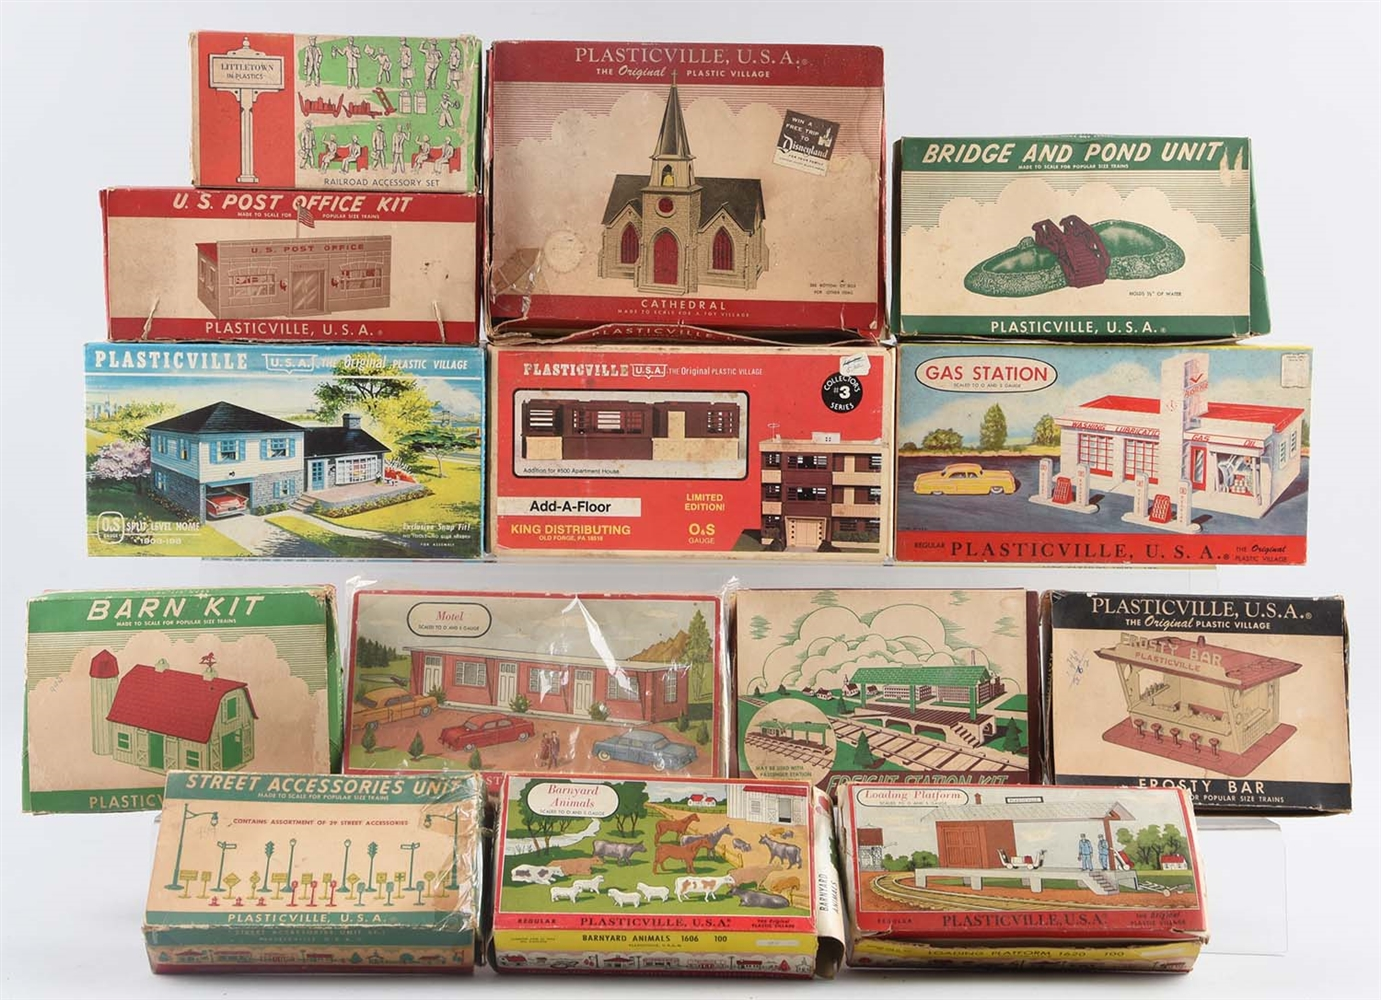 BOX OF VINTAGE PLASTICVILLE.